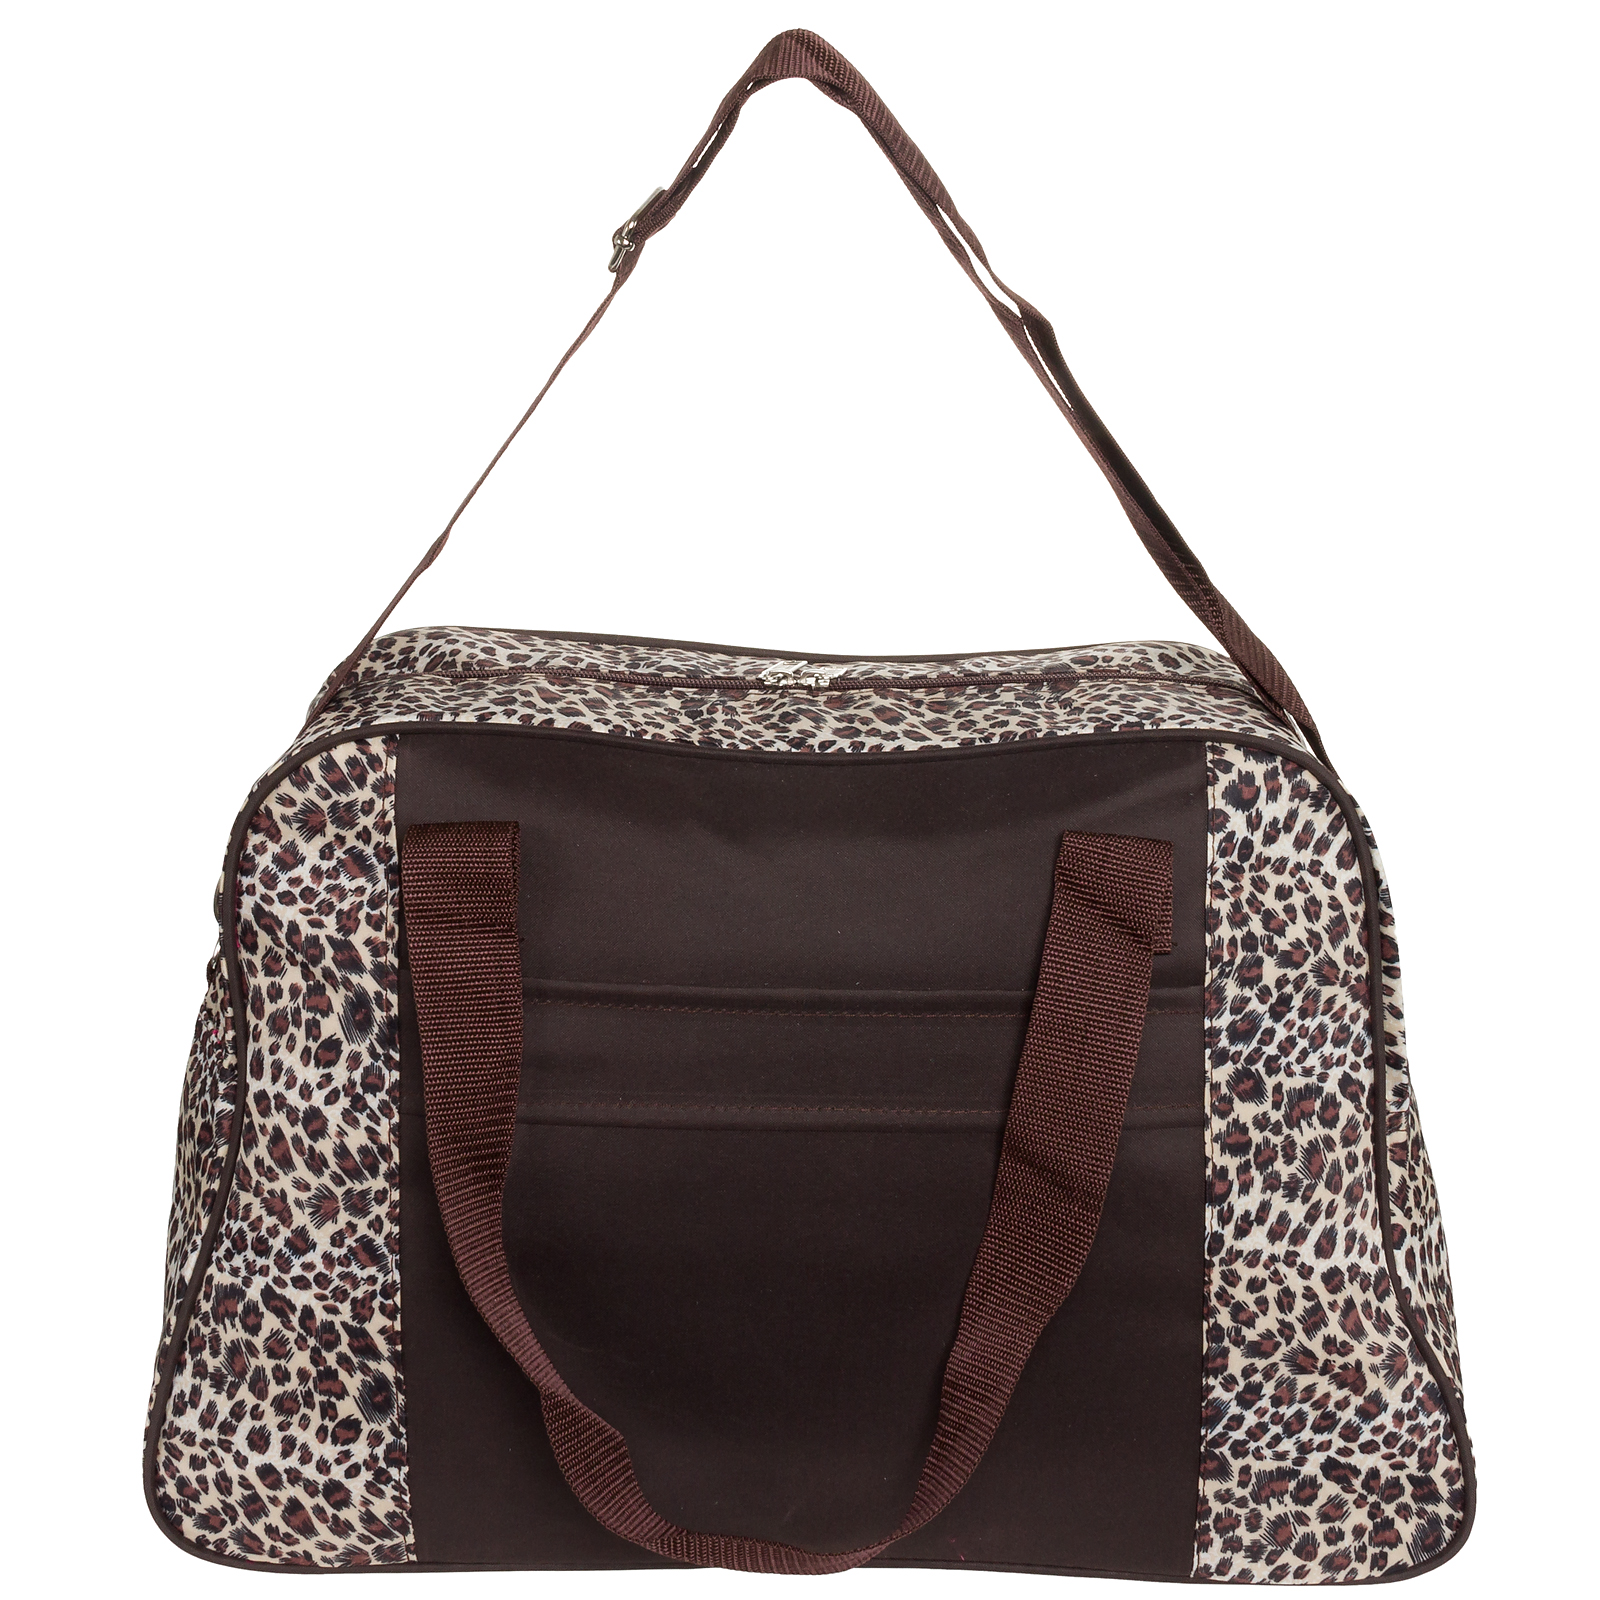 Popular The Classic Weekender Bag In Whiskey  This Classic Weekend Bag Is An